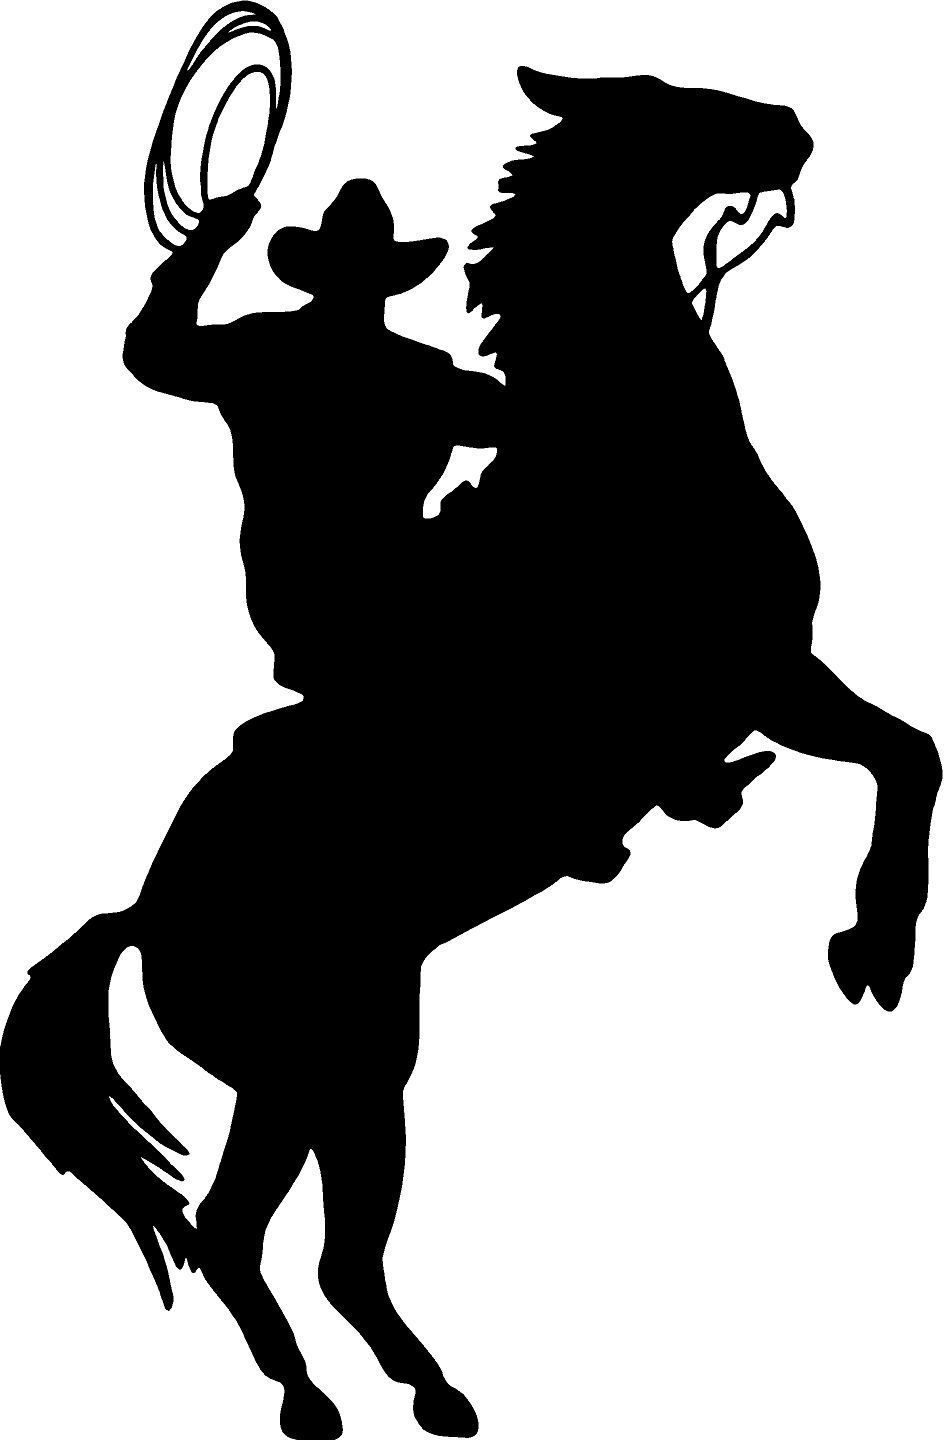 Cowboy And Horse Silhouette.